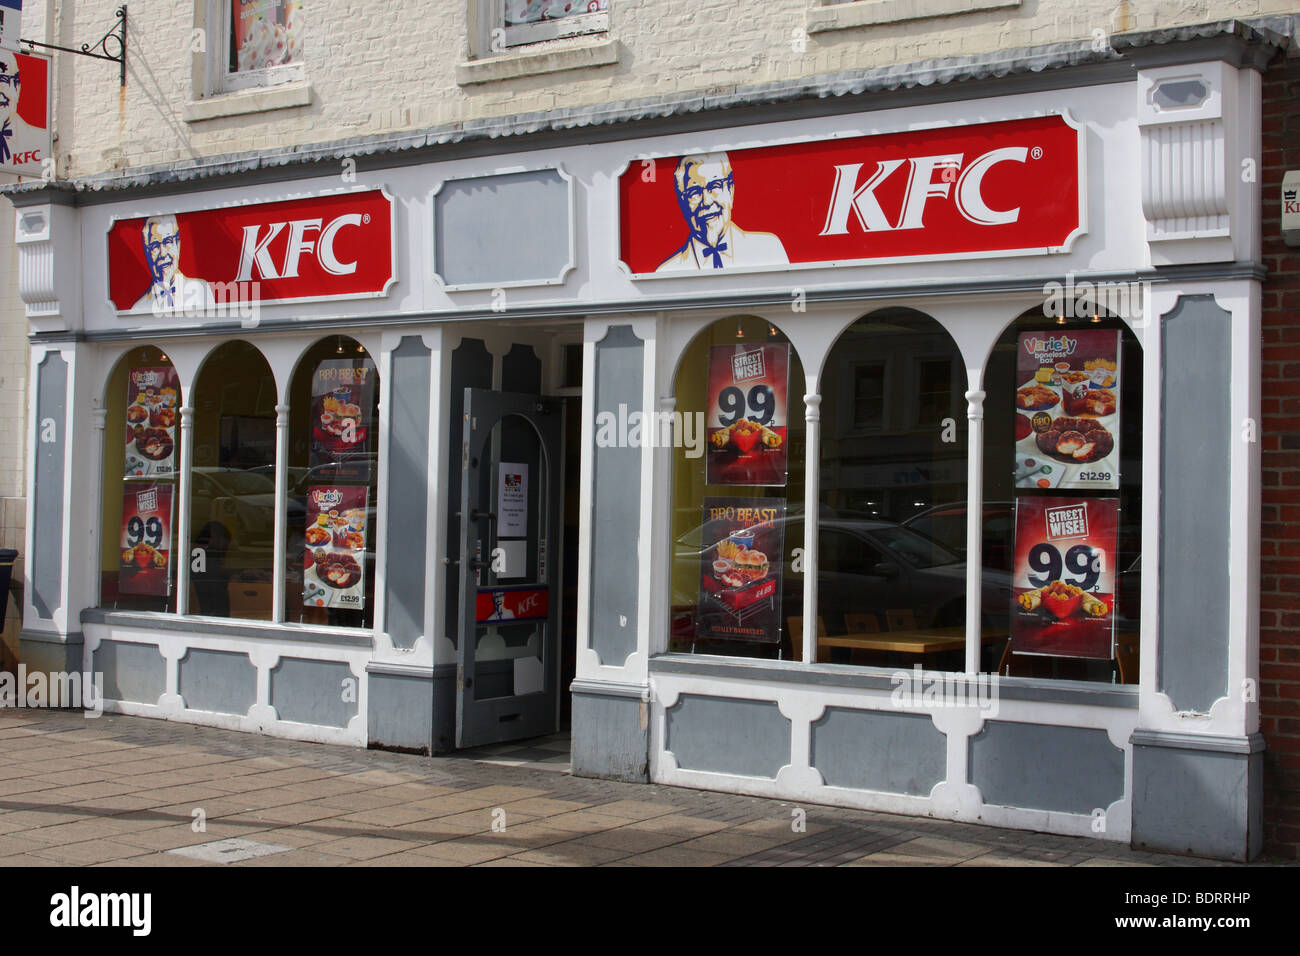 A KFC restaurant in a U.K. town. - Stock Image